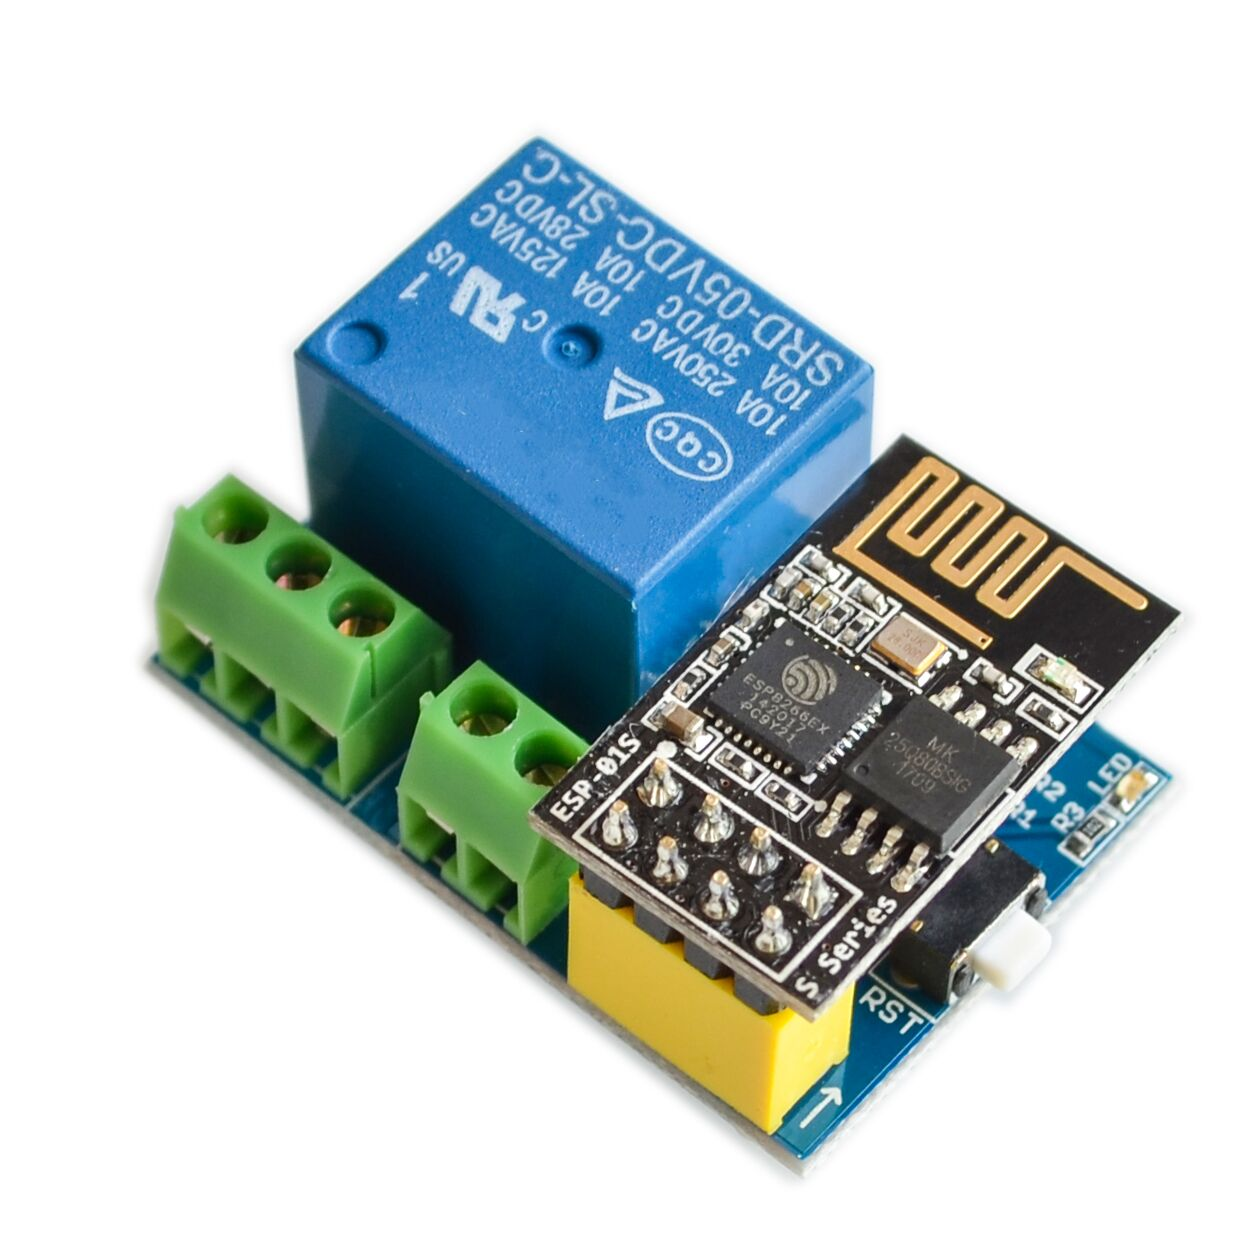 Pickit2 Programmer Pic Icd2 Pickit 2 3 Programming Adapter Pic16f73 Based Temperature Indicator And Controller Best Engineering Esp8266 5v Wifi Relay Module Things Smart Home Remote Control Switch Phone App Dht11 Humidity